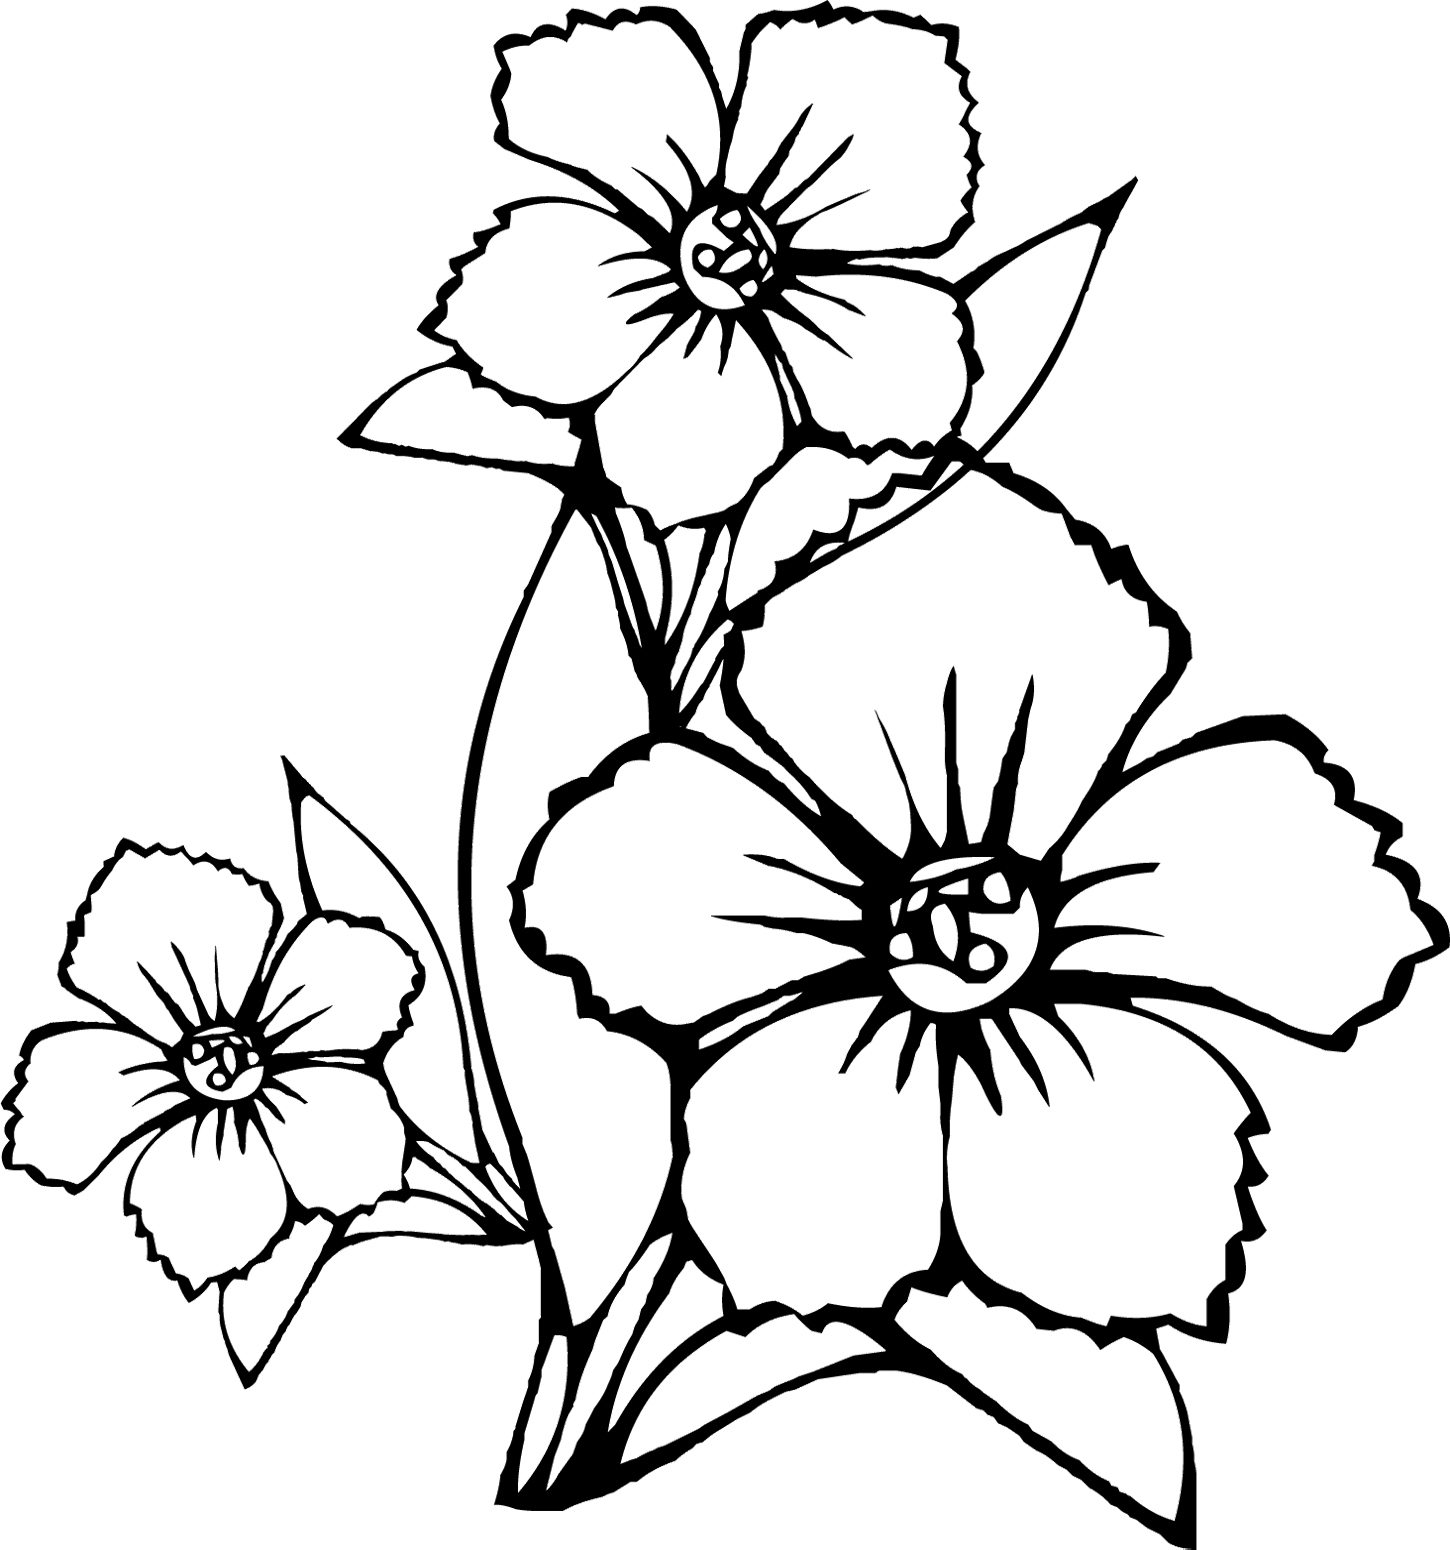 1450x1550 Pictures Kaner Flower In Pencil Easy,